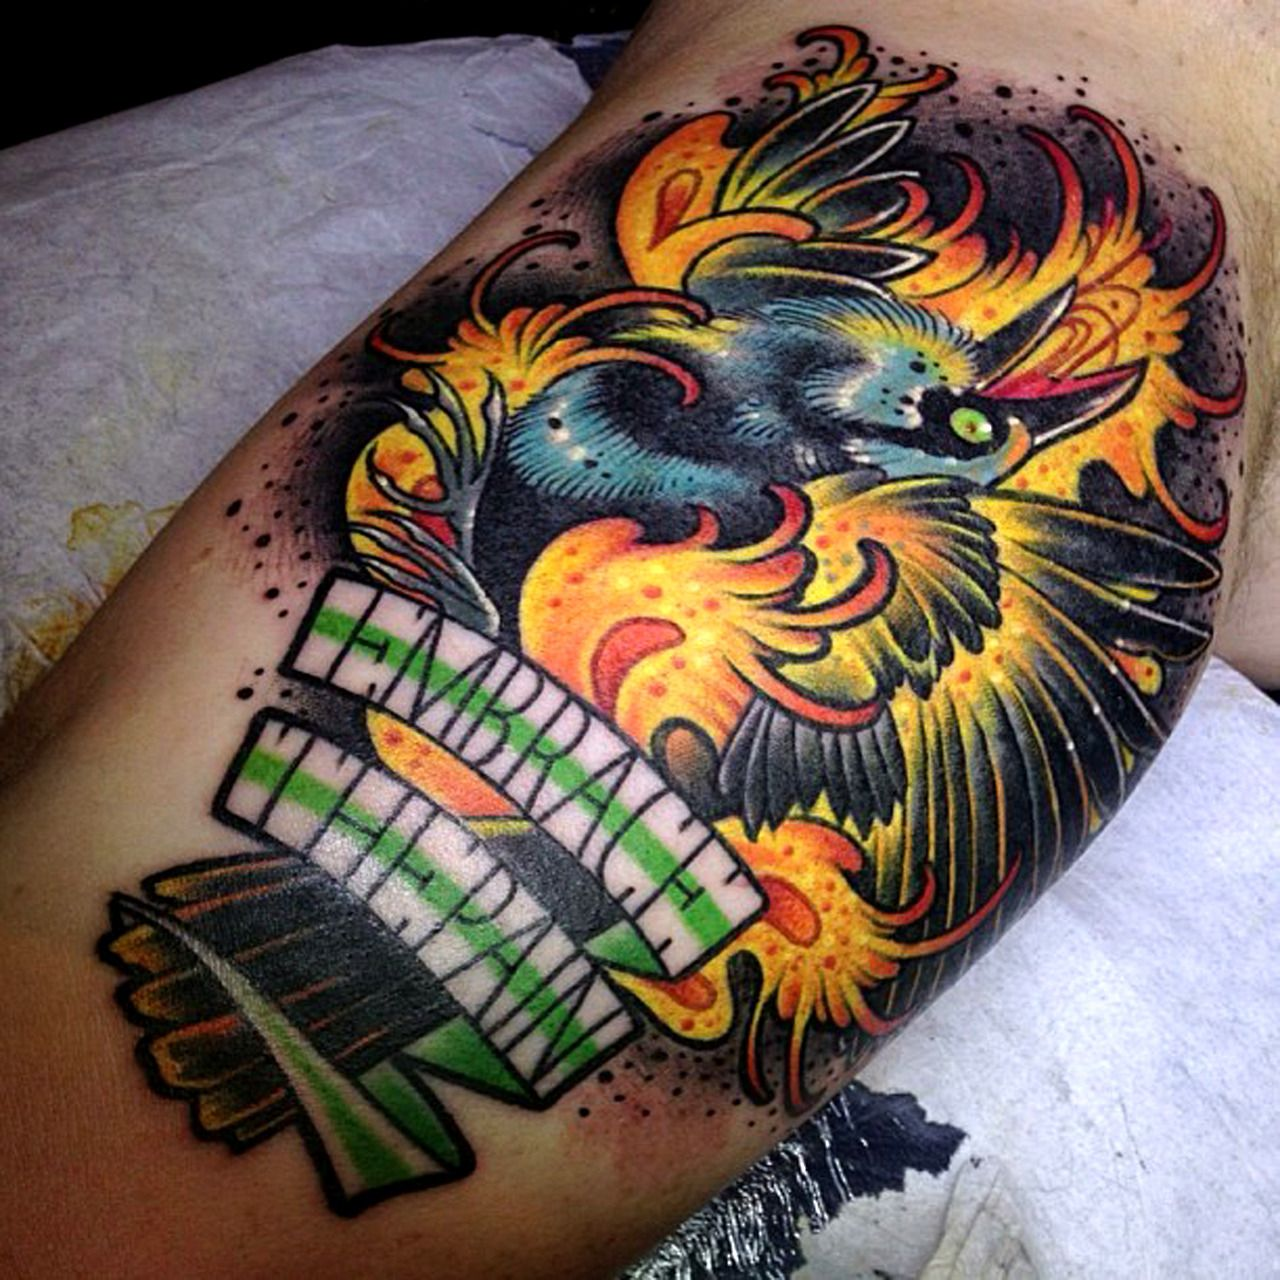 Embrace The Pain Tattoo by Aniela at BläckByrån Tattoo Studio in ... - Tattoo Studio Bielefeld